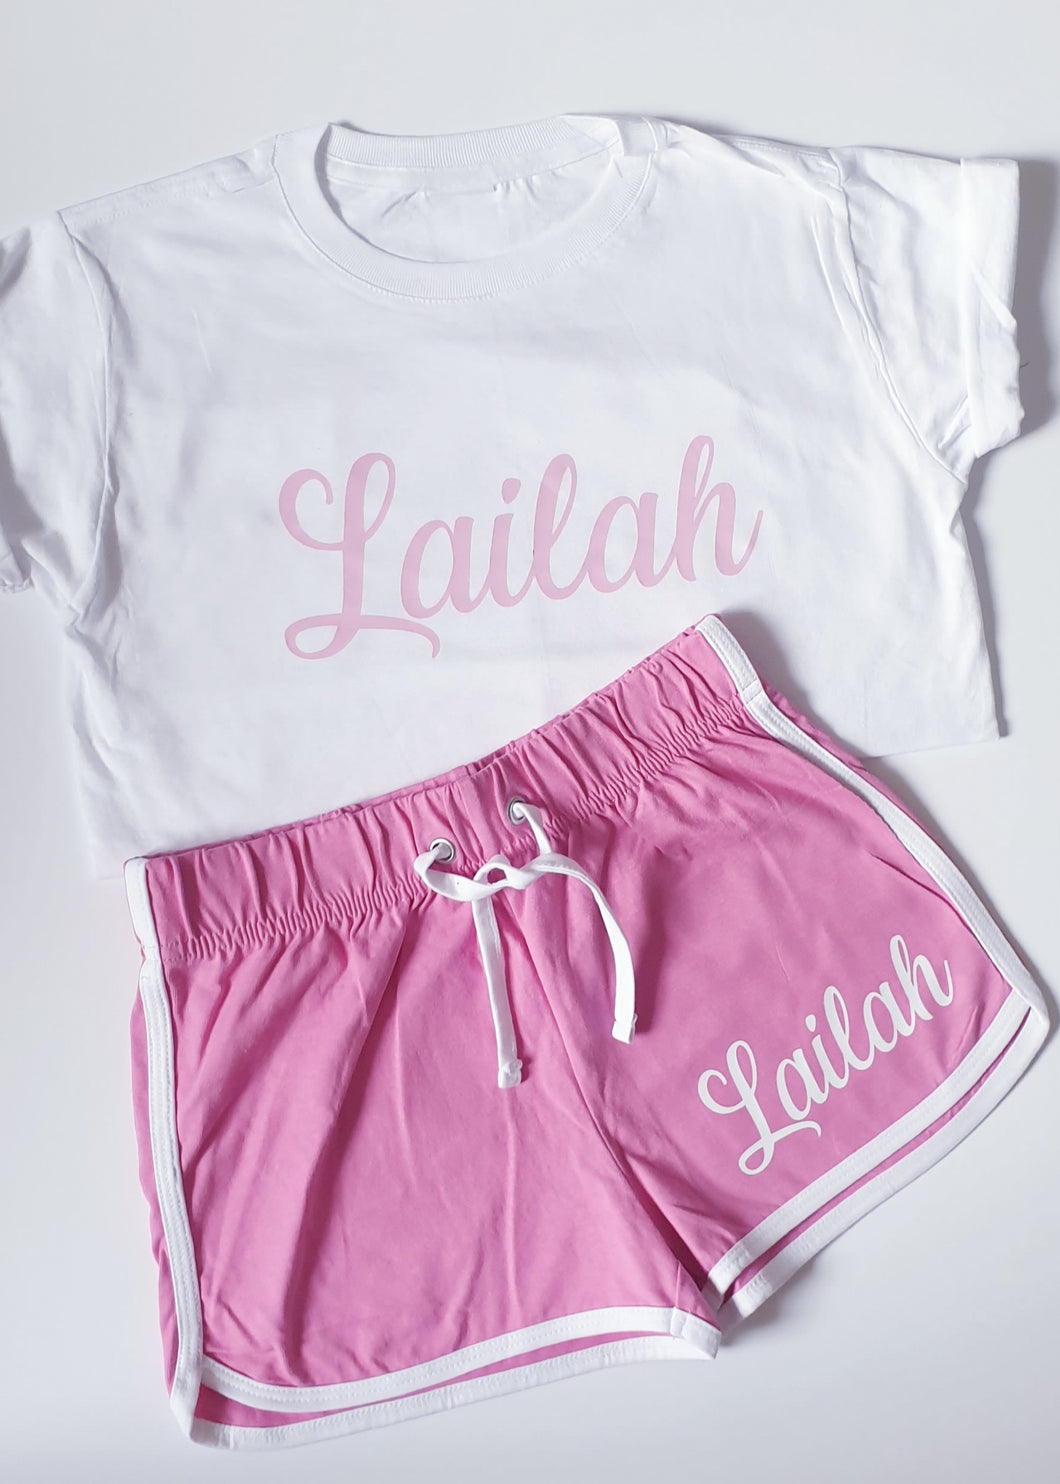 Retro Shorts & Tee Set